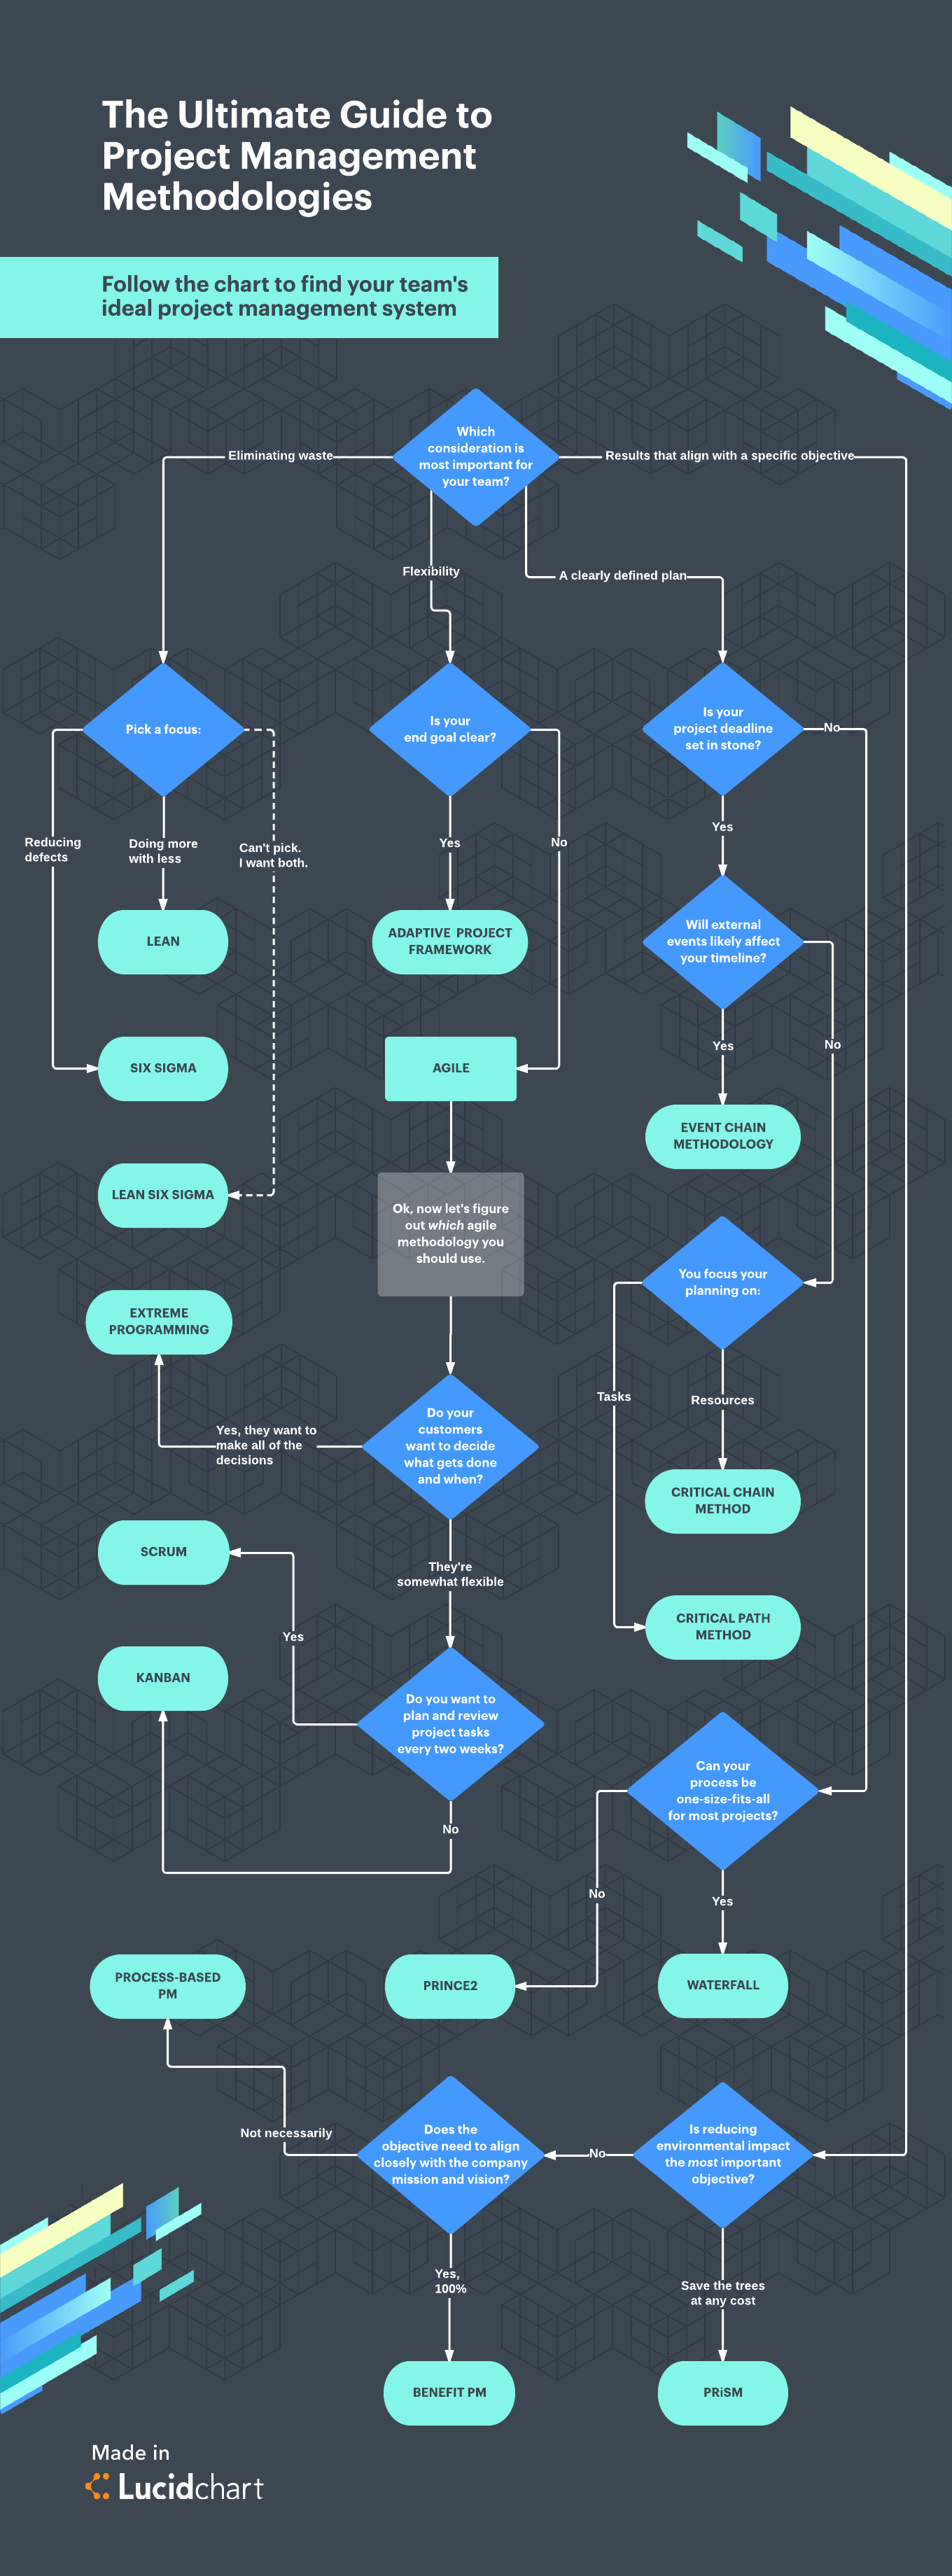 Project management infographic in Lucidchart